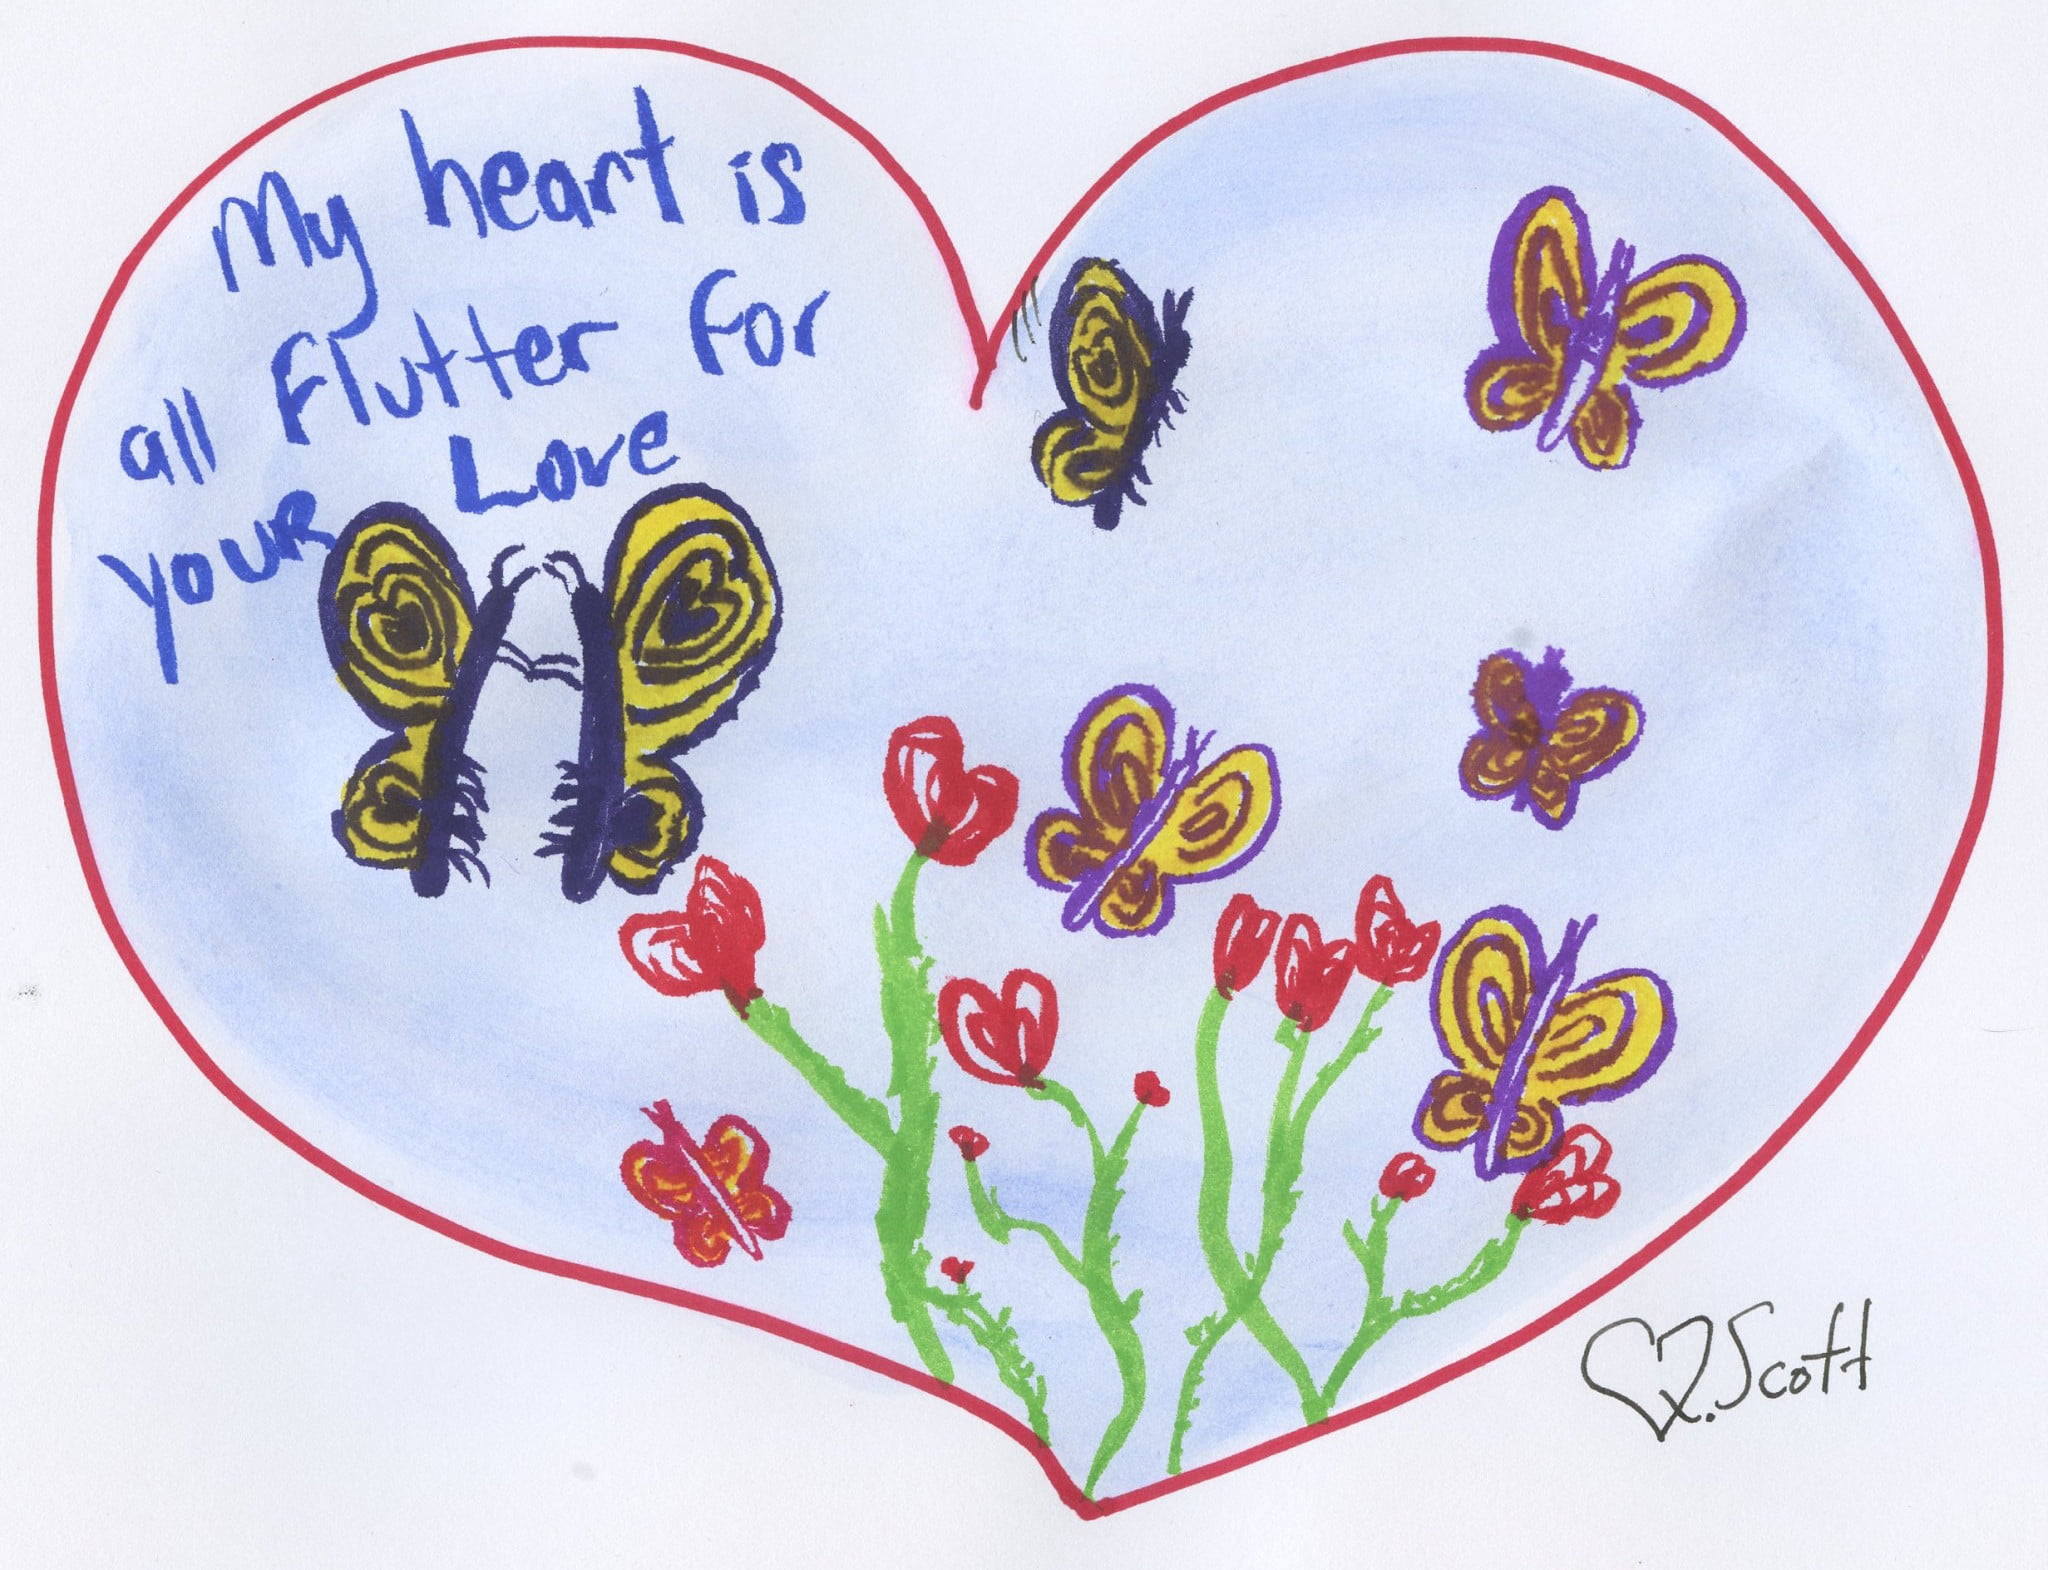 My heart is all flutter for your love